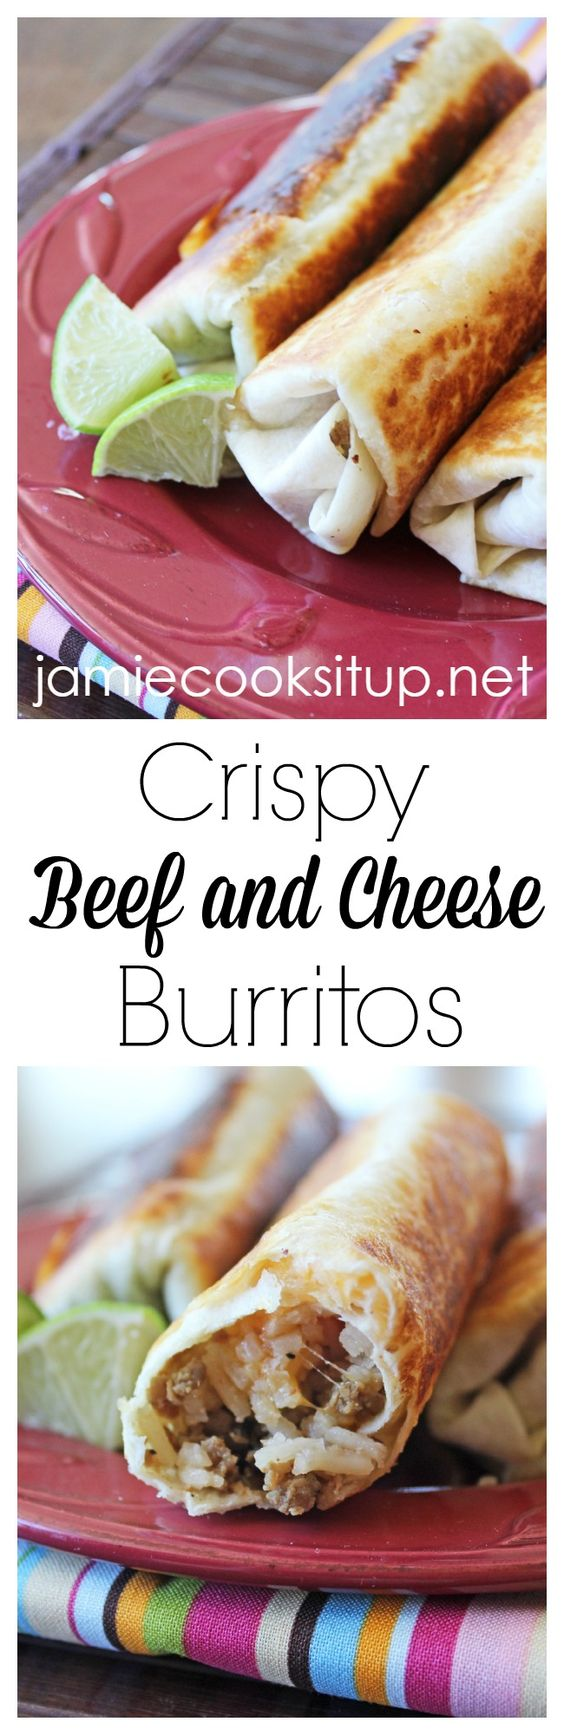 Crispy Beef and Cheese Burritos from Jamie Cooks It Up! These crispy burritos can be made in about 15 minutes and make good use out of leftover taco meat and rice.: